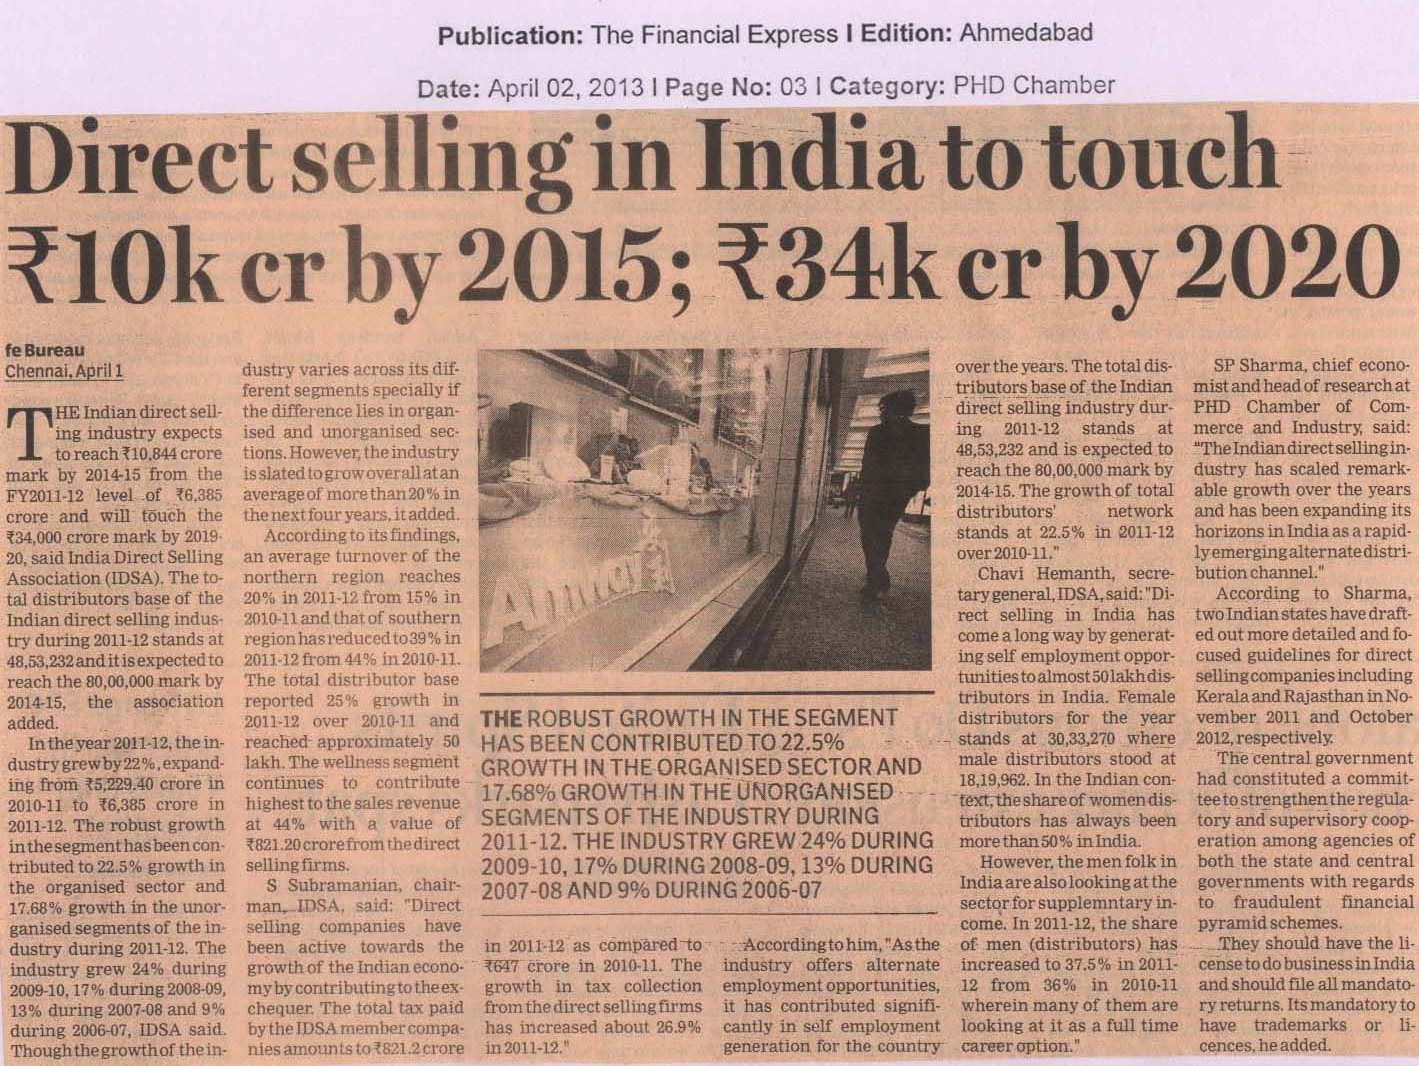 Direct Selling Industry expected to reach INR 3,40,000 Million by